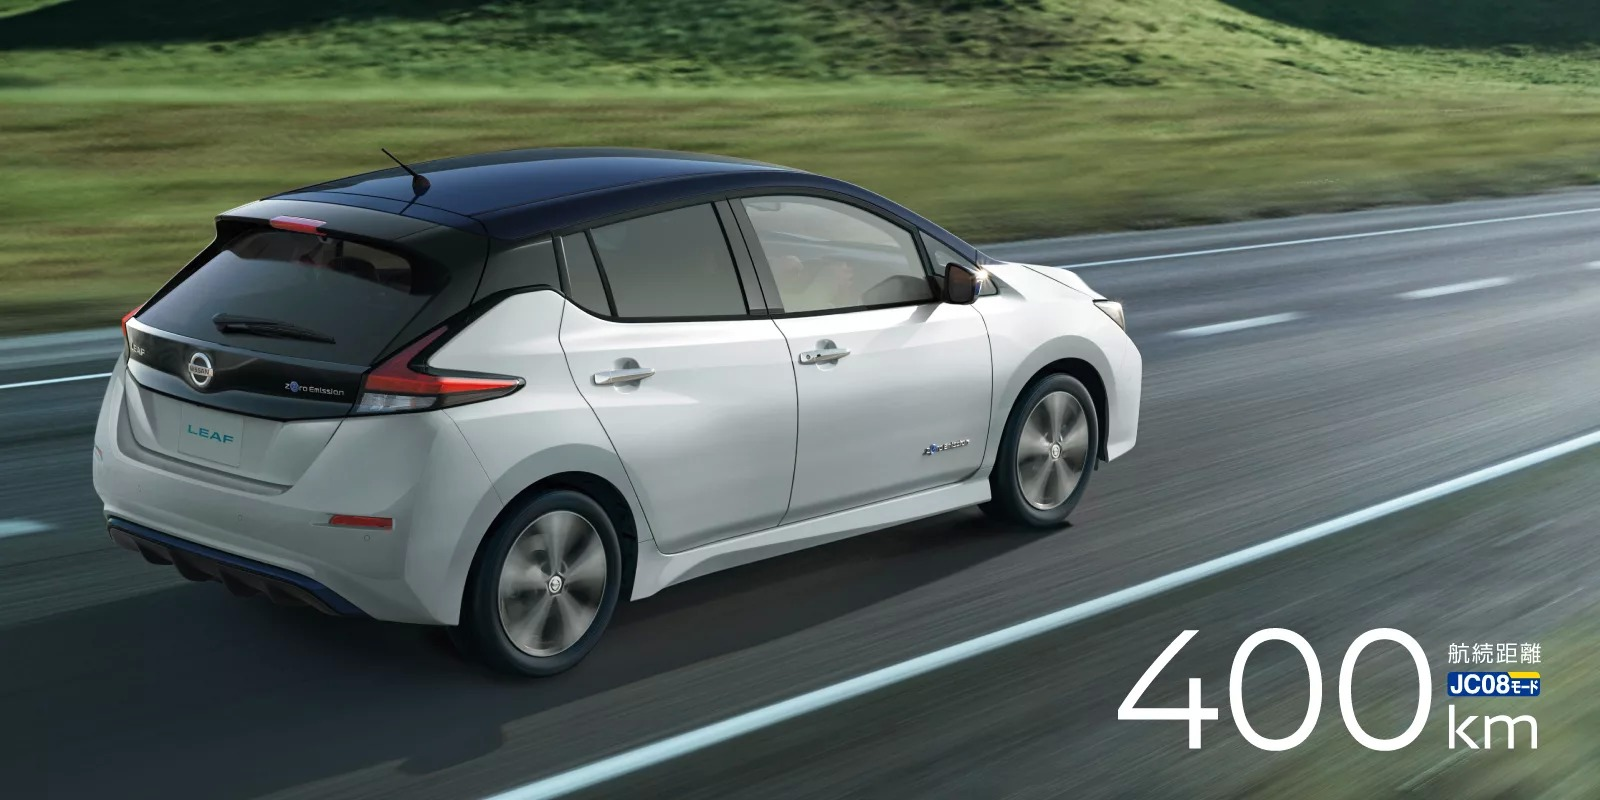 2018-nissan-leaf-advertised-in-japan-with-400-km-range.jpg.jpg